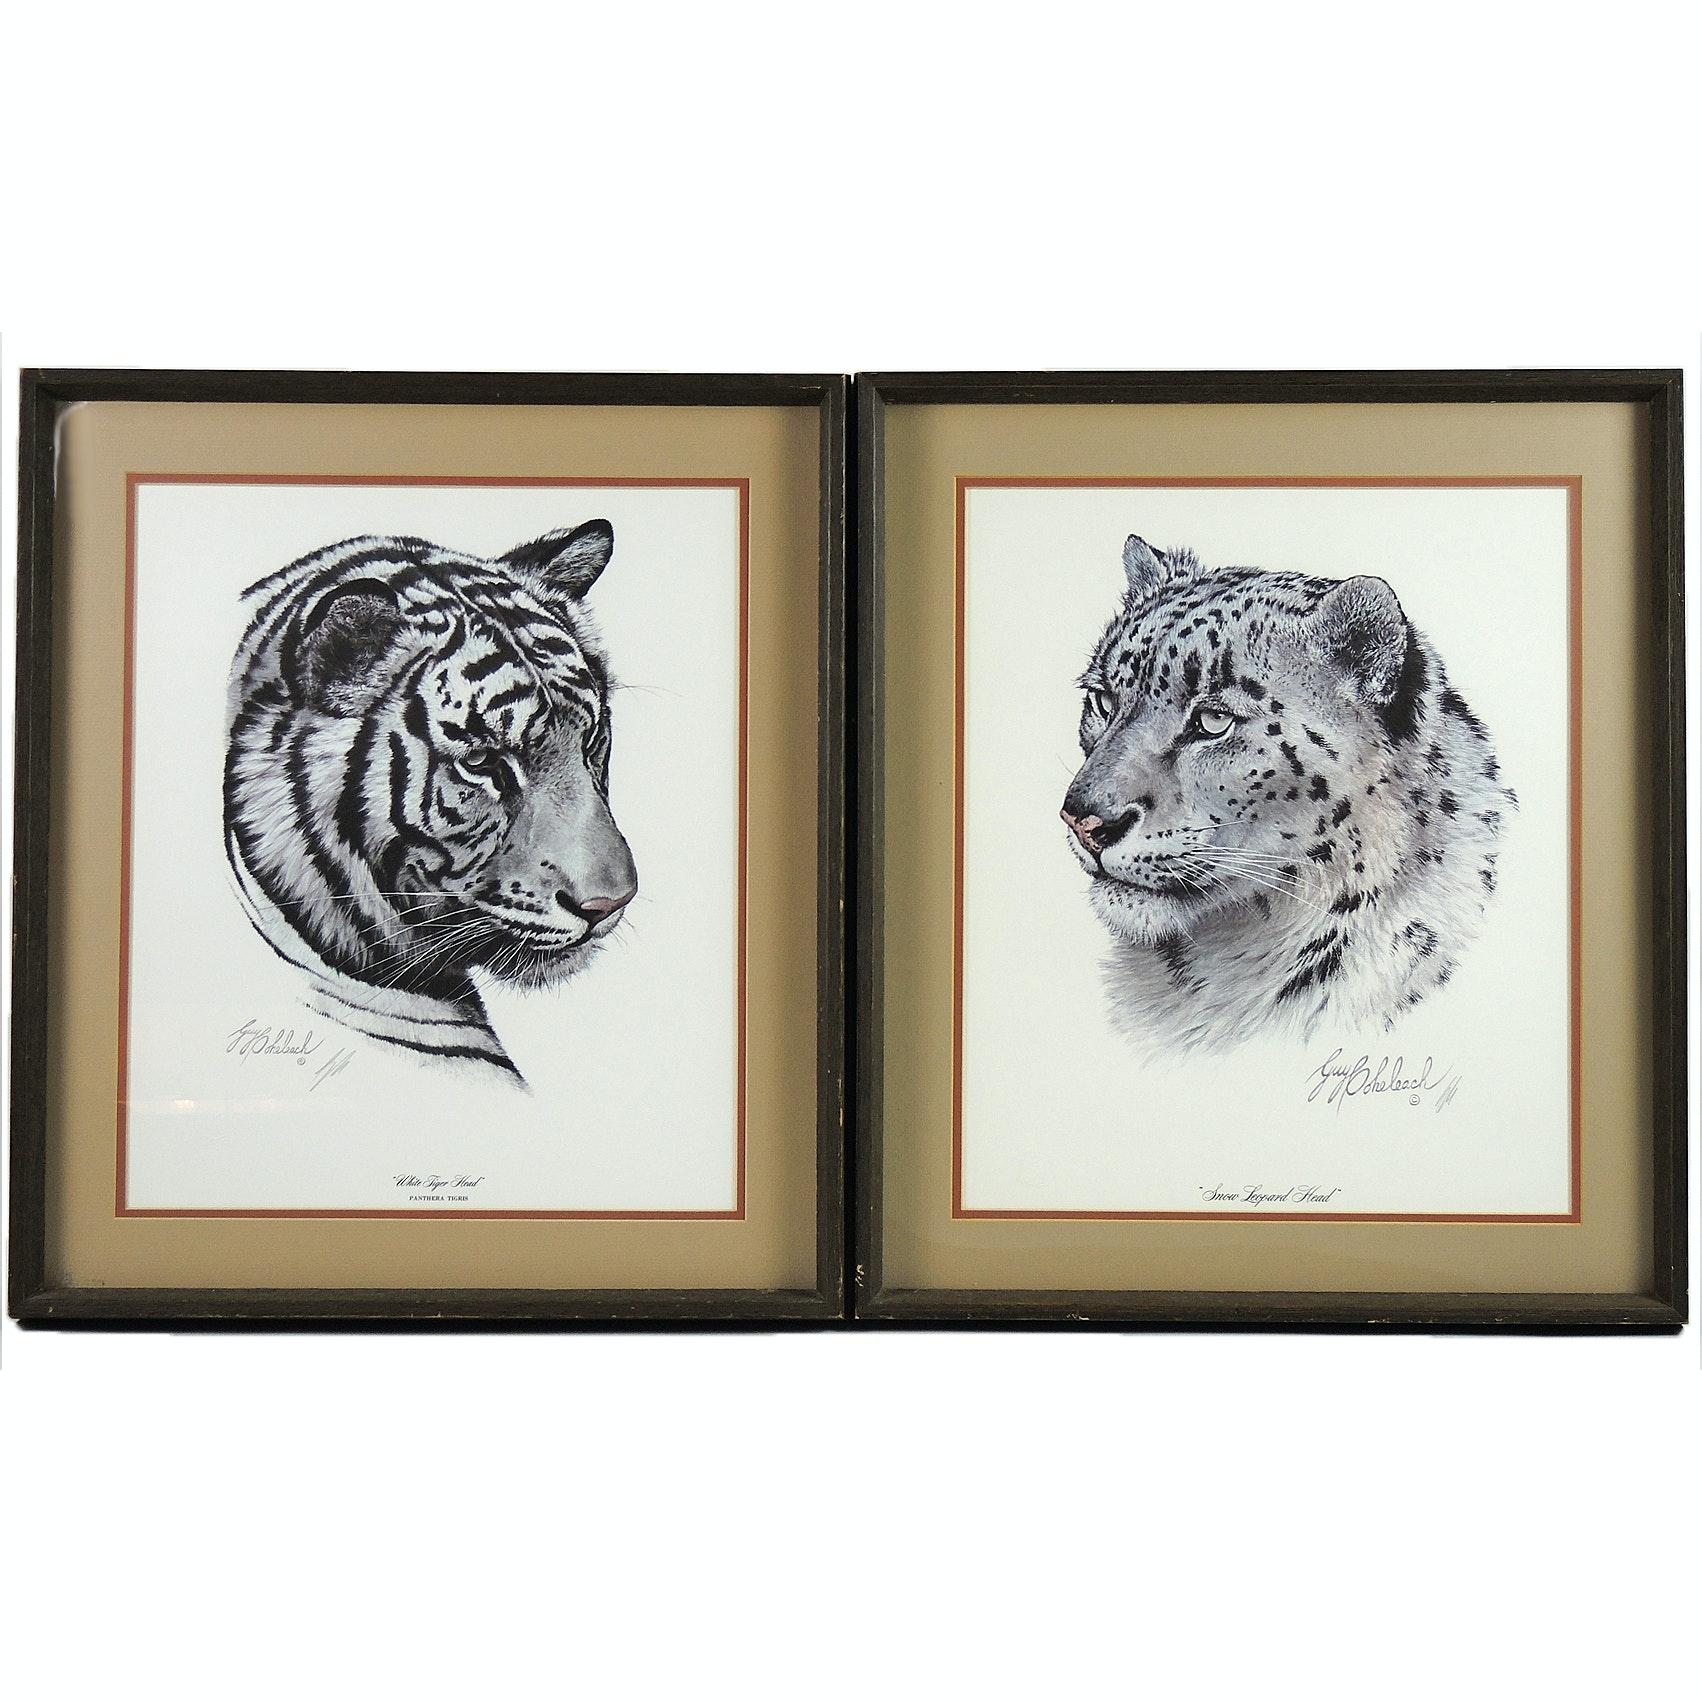 Wildlife Signed Offset Lithographs by Guy Coheleach